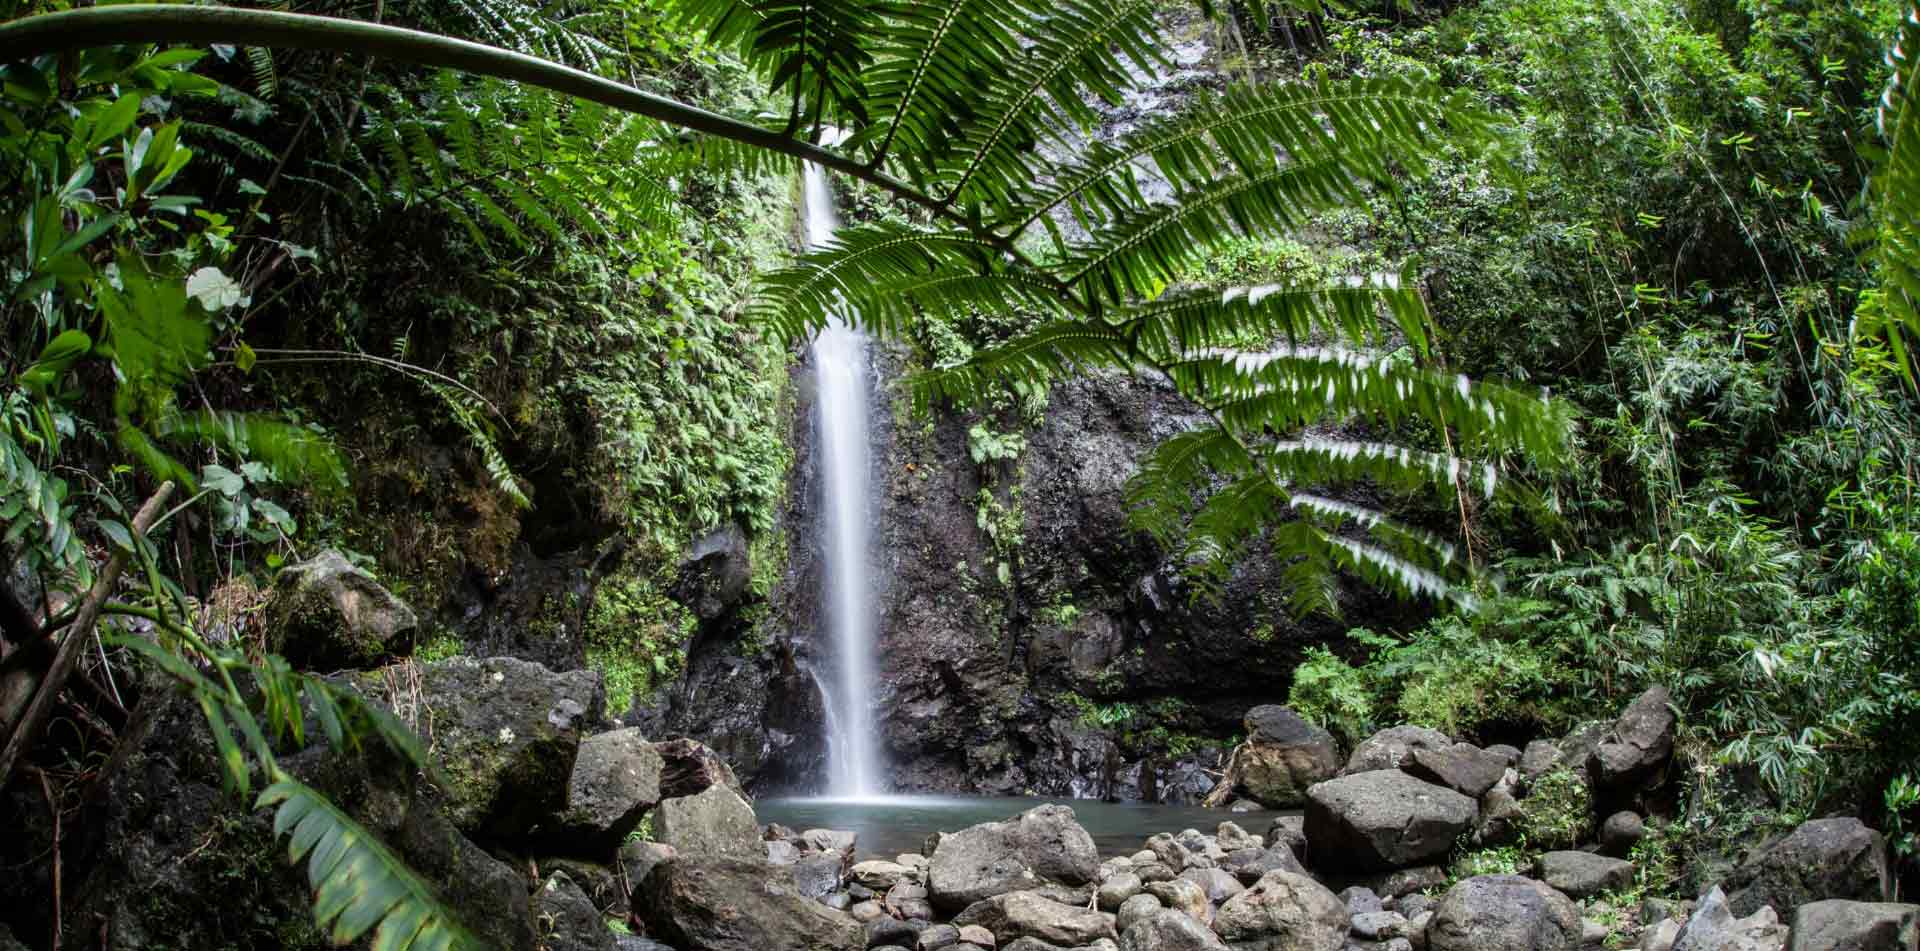 South Pacific Tahiti scenic waterfall lush rocky jungle hike adventure - luxury vacation destinations